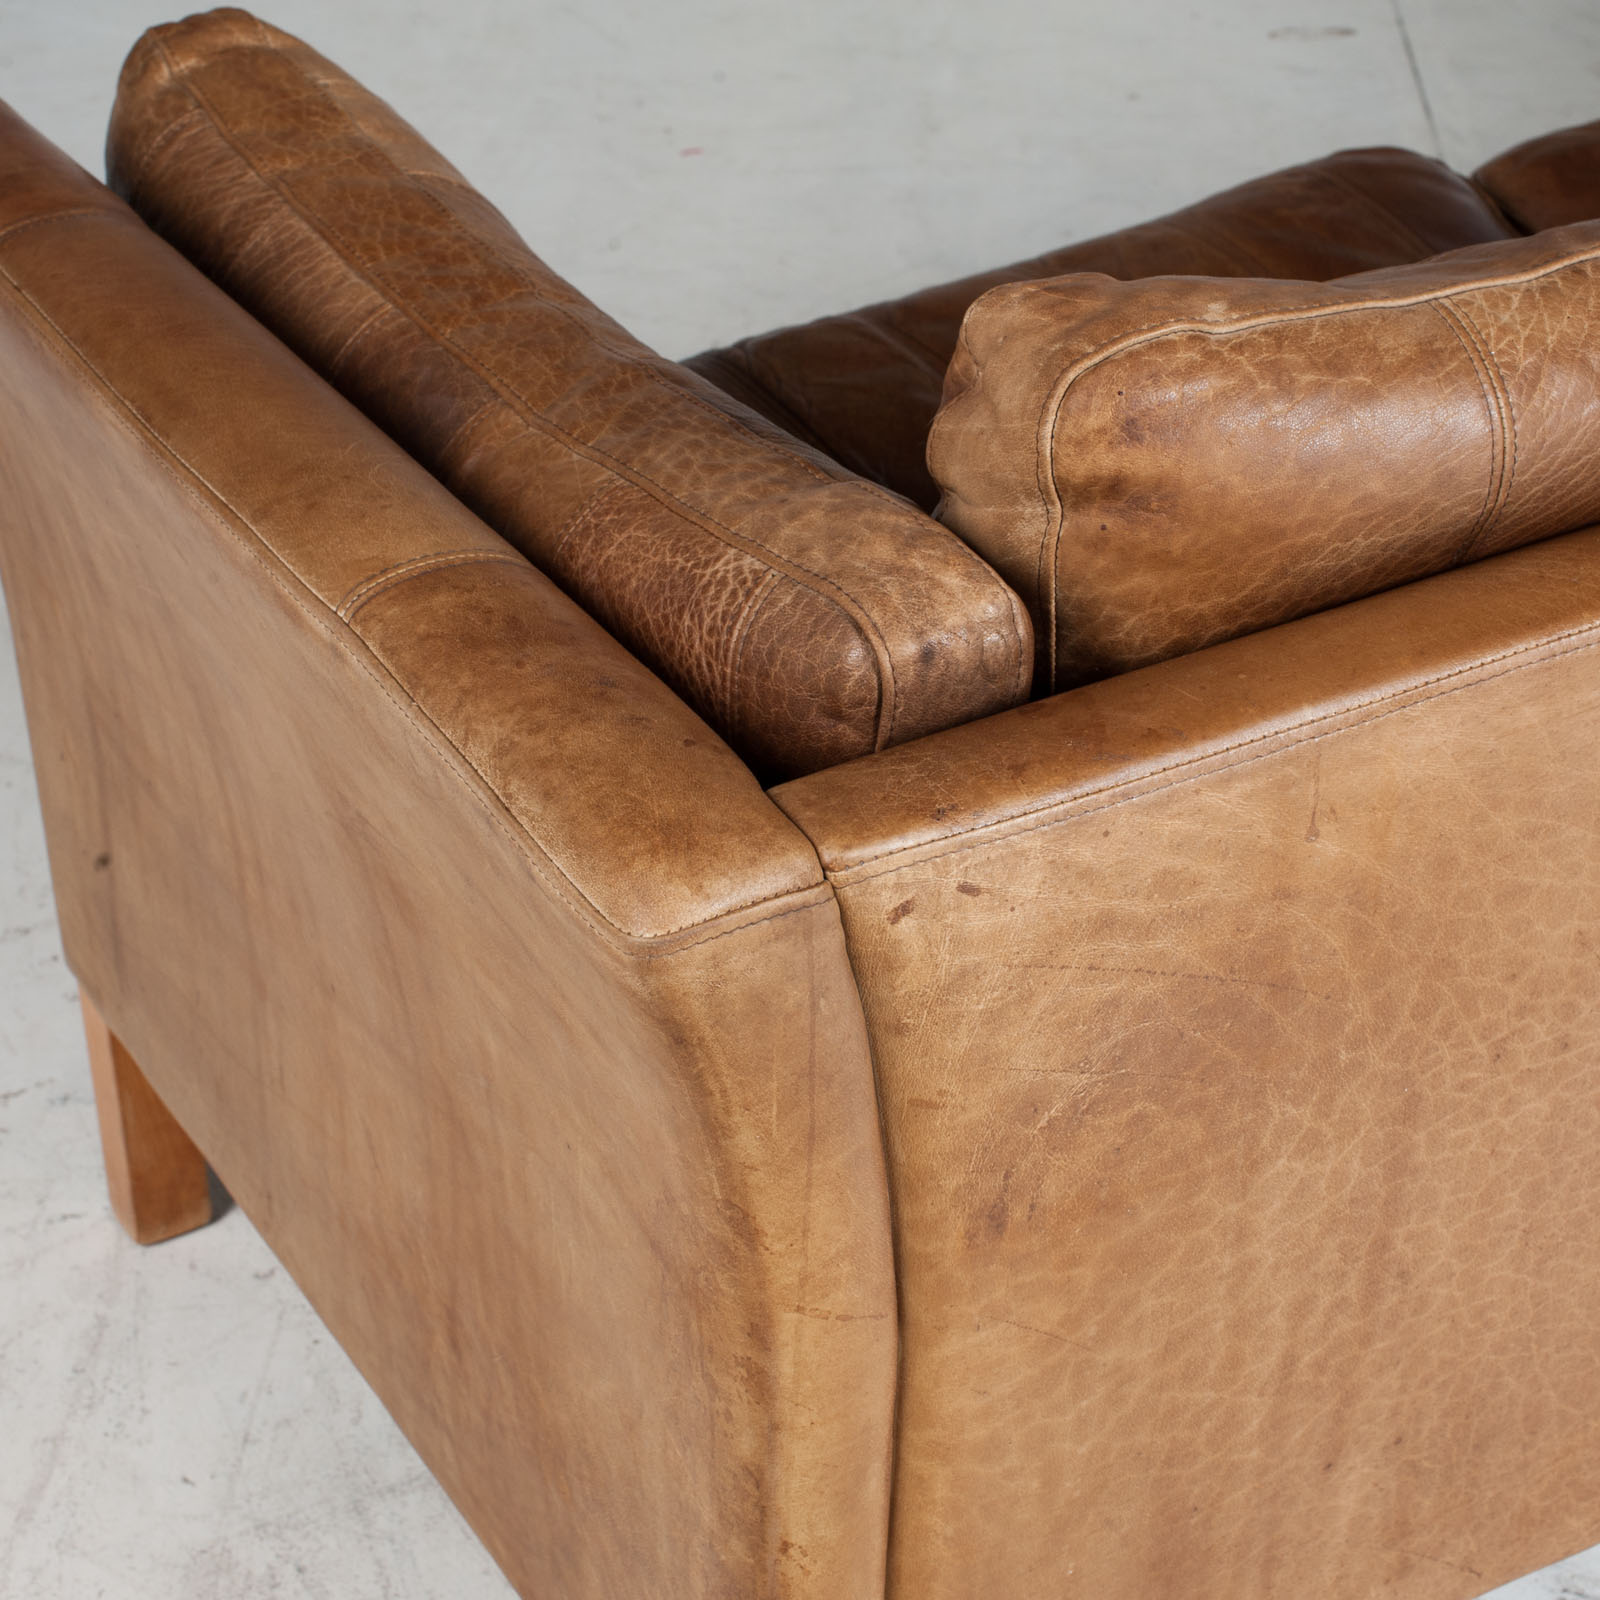 2.5 Seat Sofa In Tan Panelled Leather 1960s Denmark17